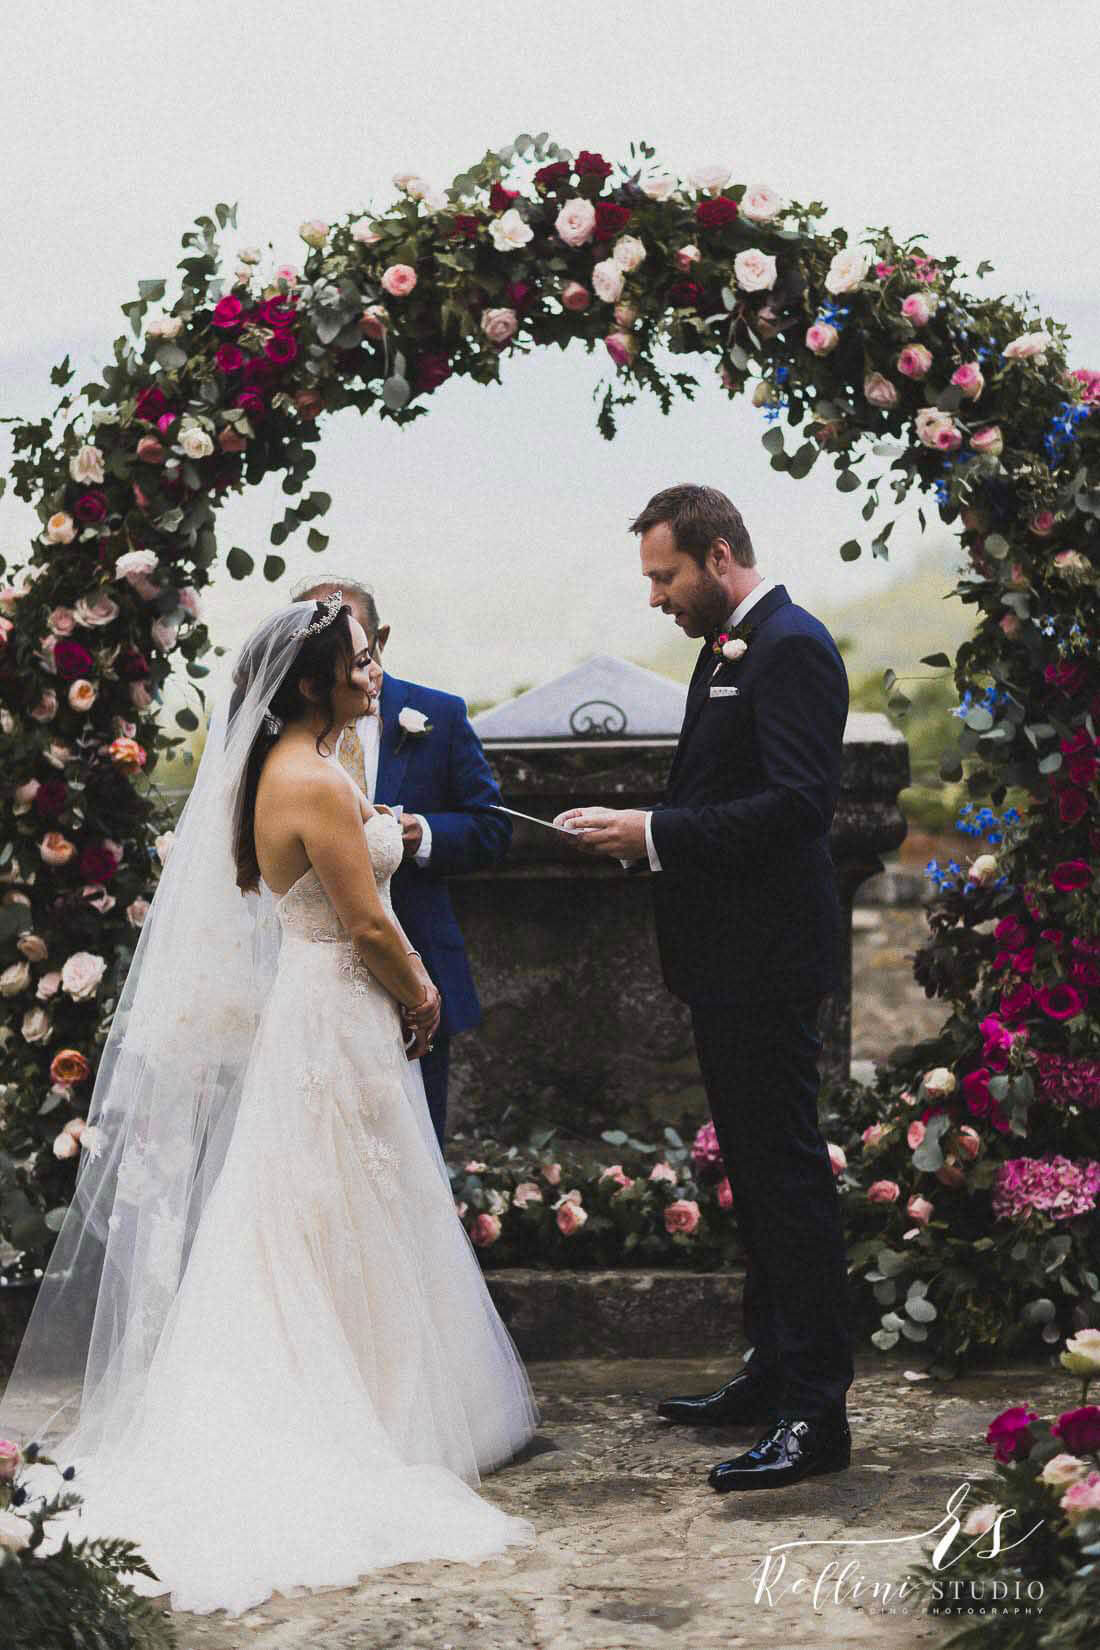 Sahar & Christian wedding in Italy